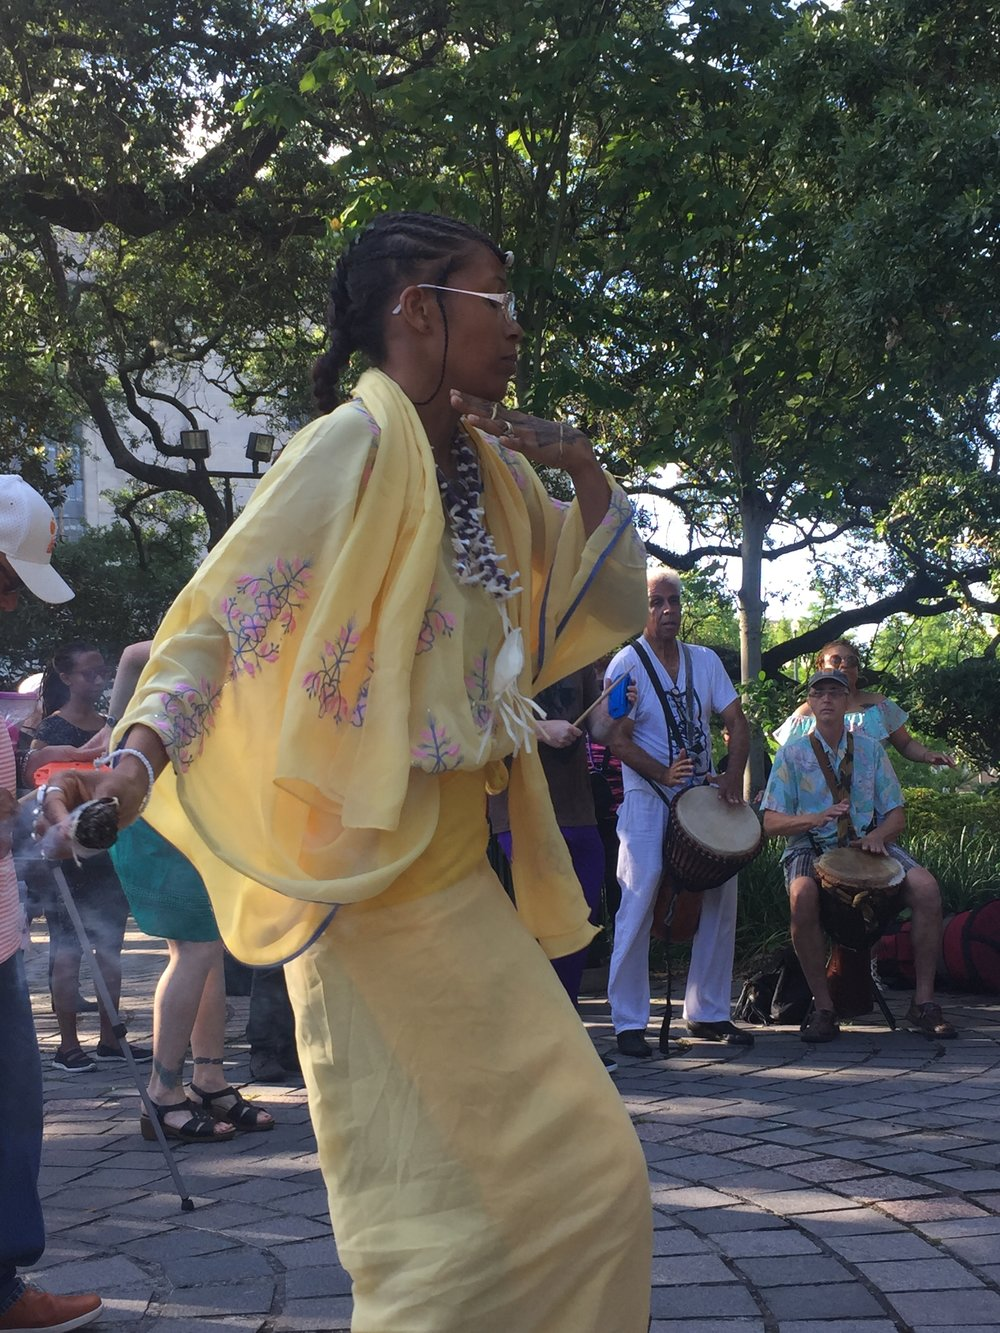 Every Sunday afternoon in Congo Square, New Orleans drummers and dancers still gather to carry on the 200 plus year tradition of gathering to drum and dance, giving roots to the tree of American music.